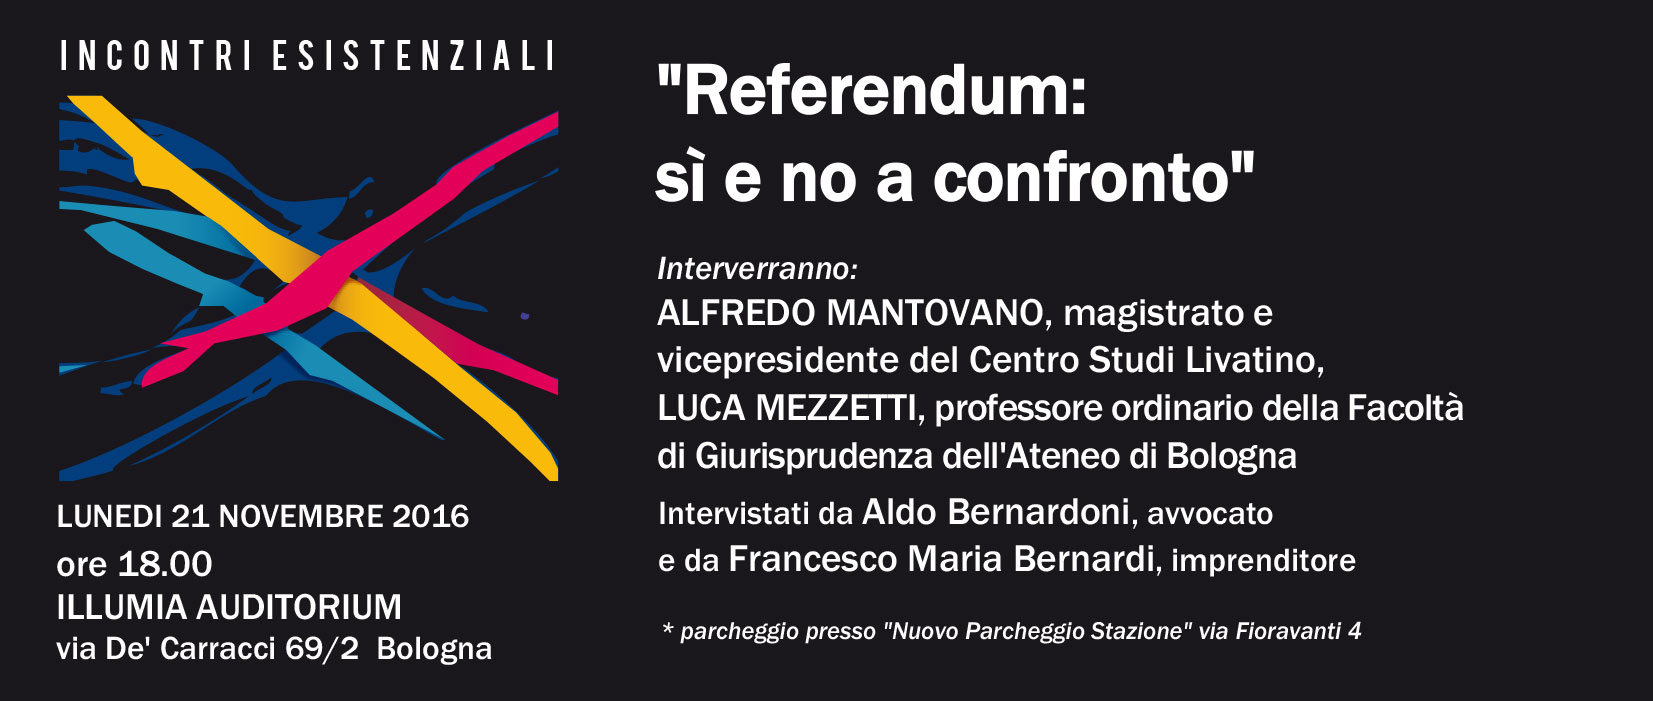 Referendum: Si E No A Confronto